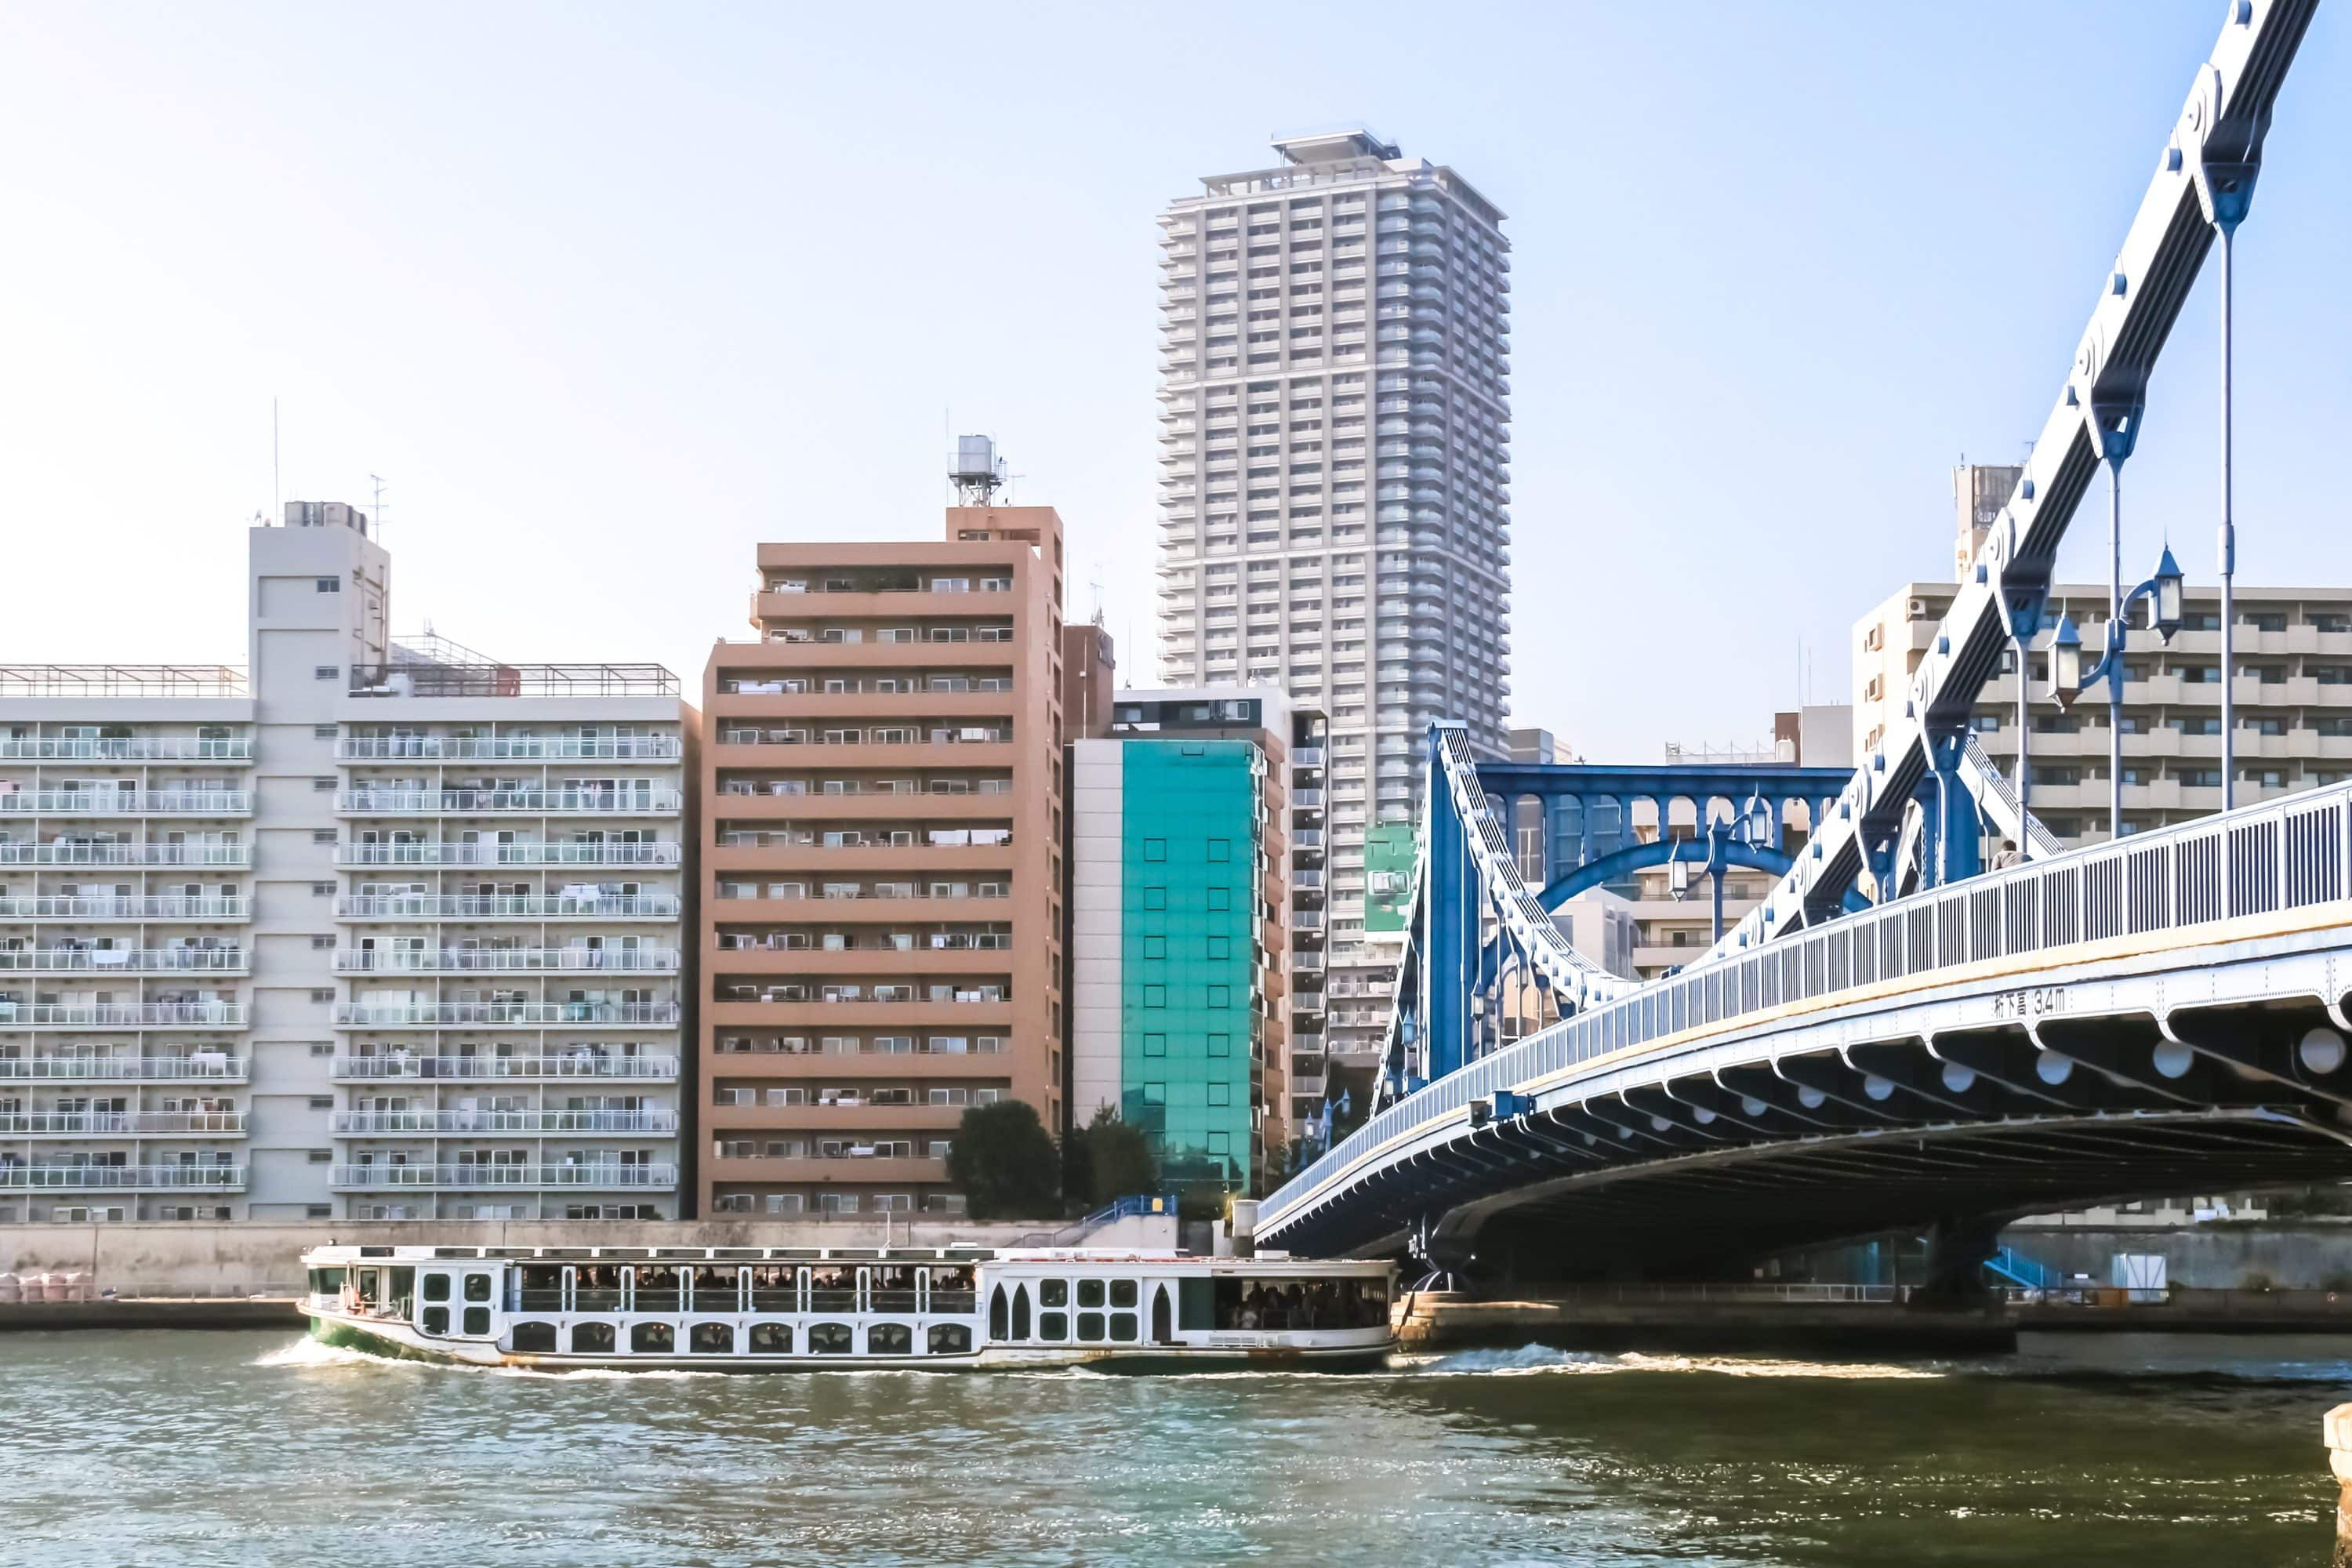 A boat emerges from under a bridge, backdropped by the Tokyo cityscape